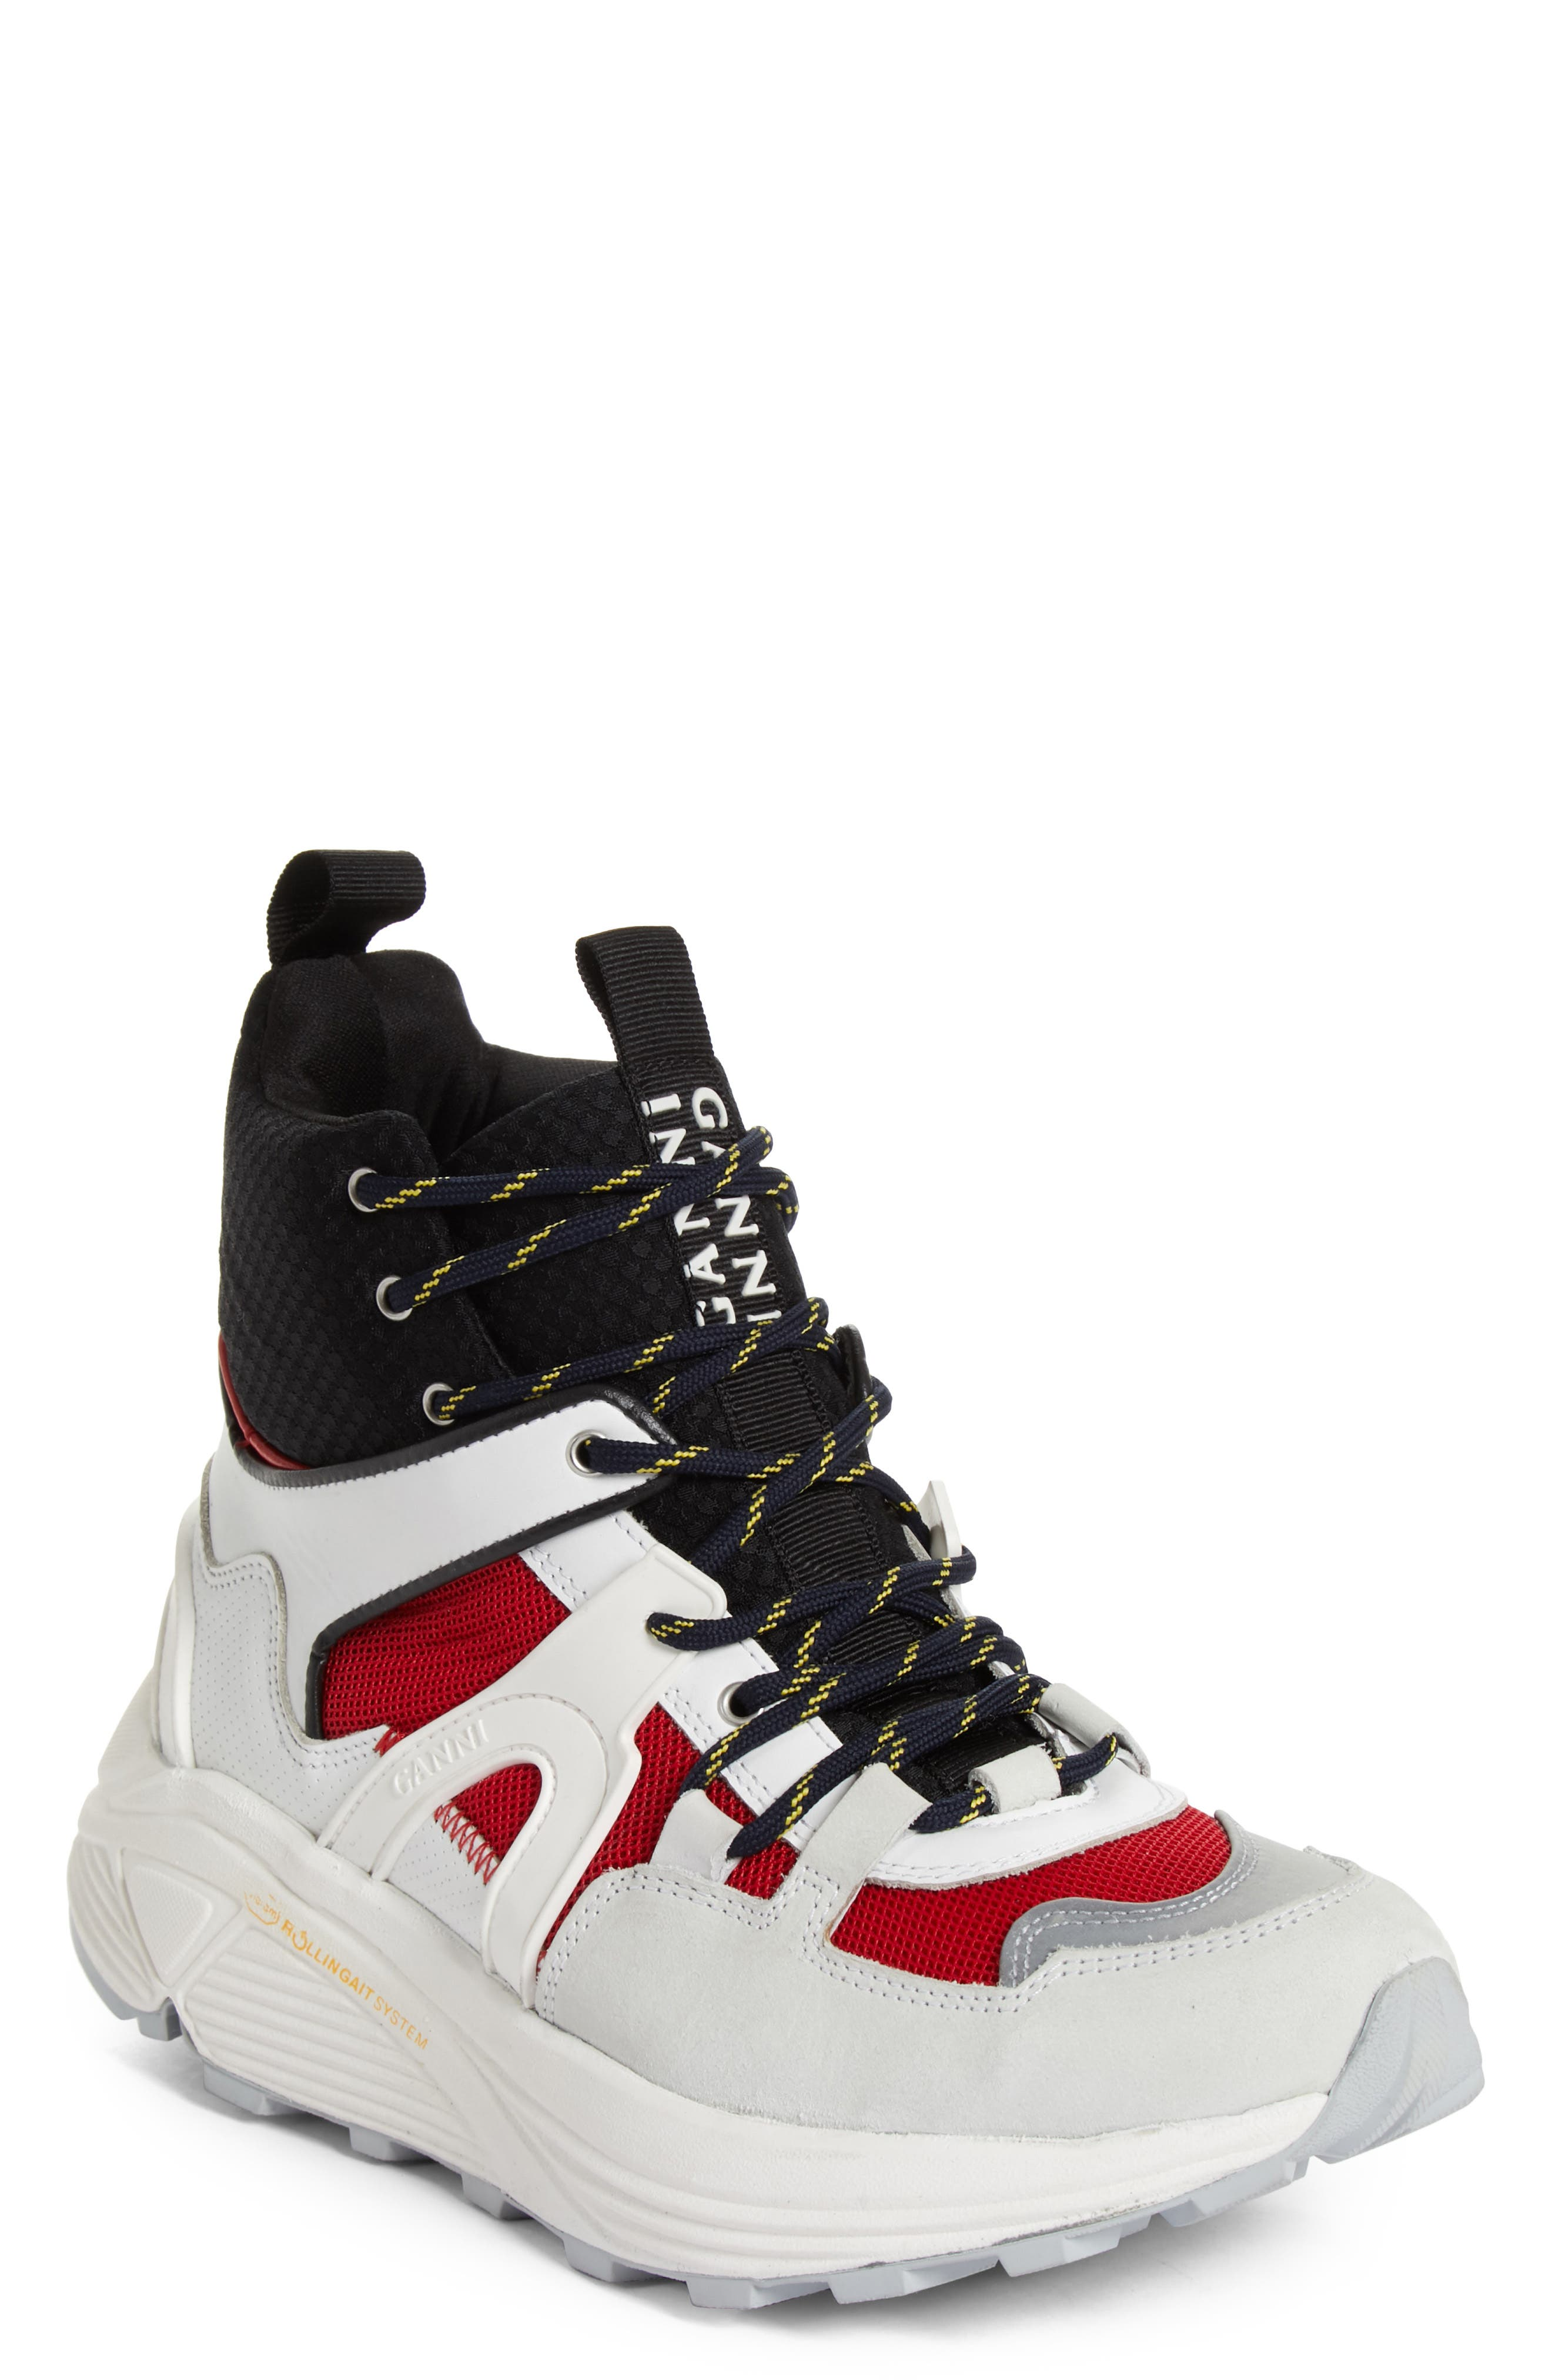 GANNI,                             High Top Tech Sneaker,                             Main thumbnail 1, color,                             FIERY RED 403